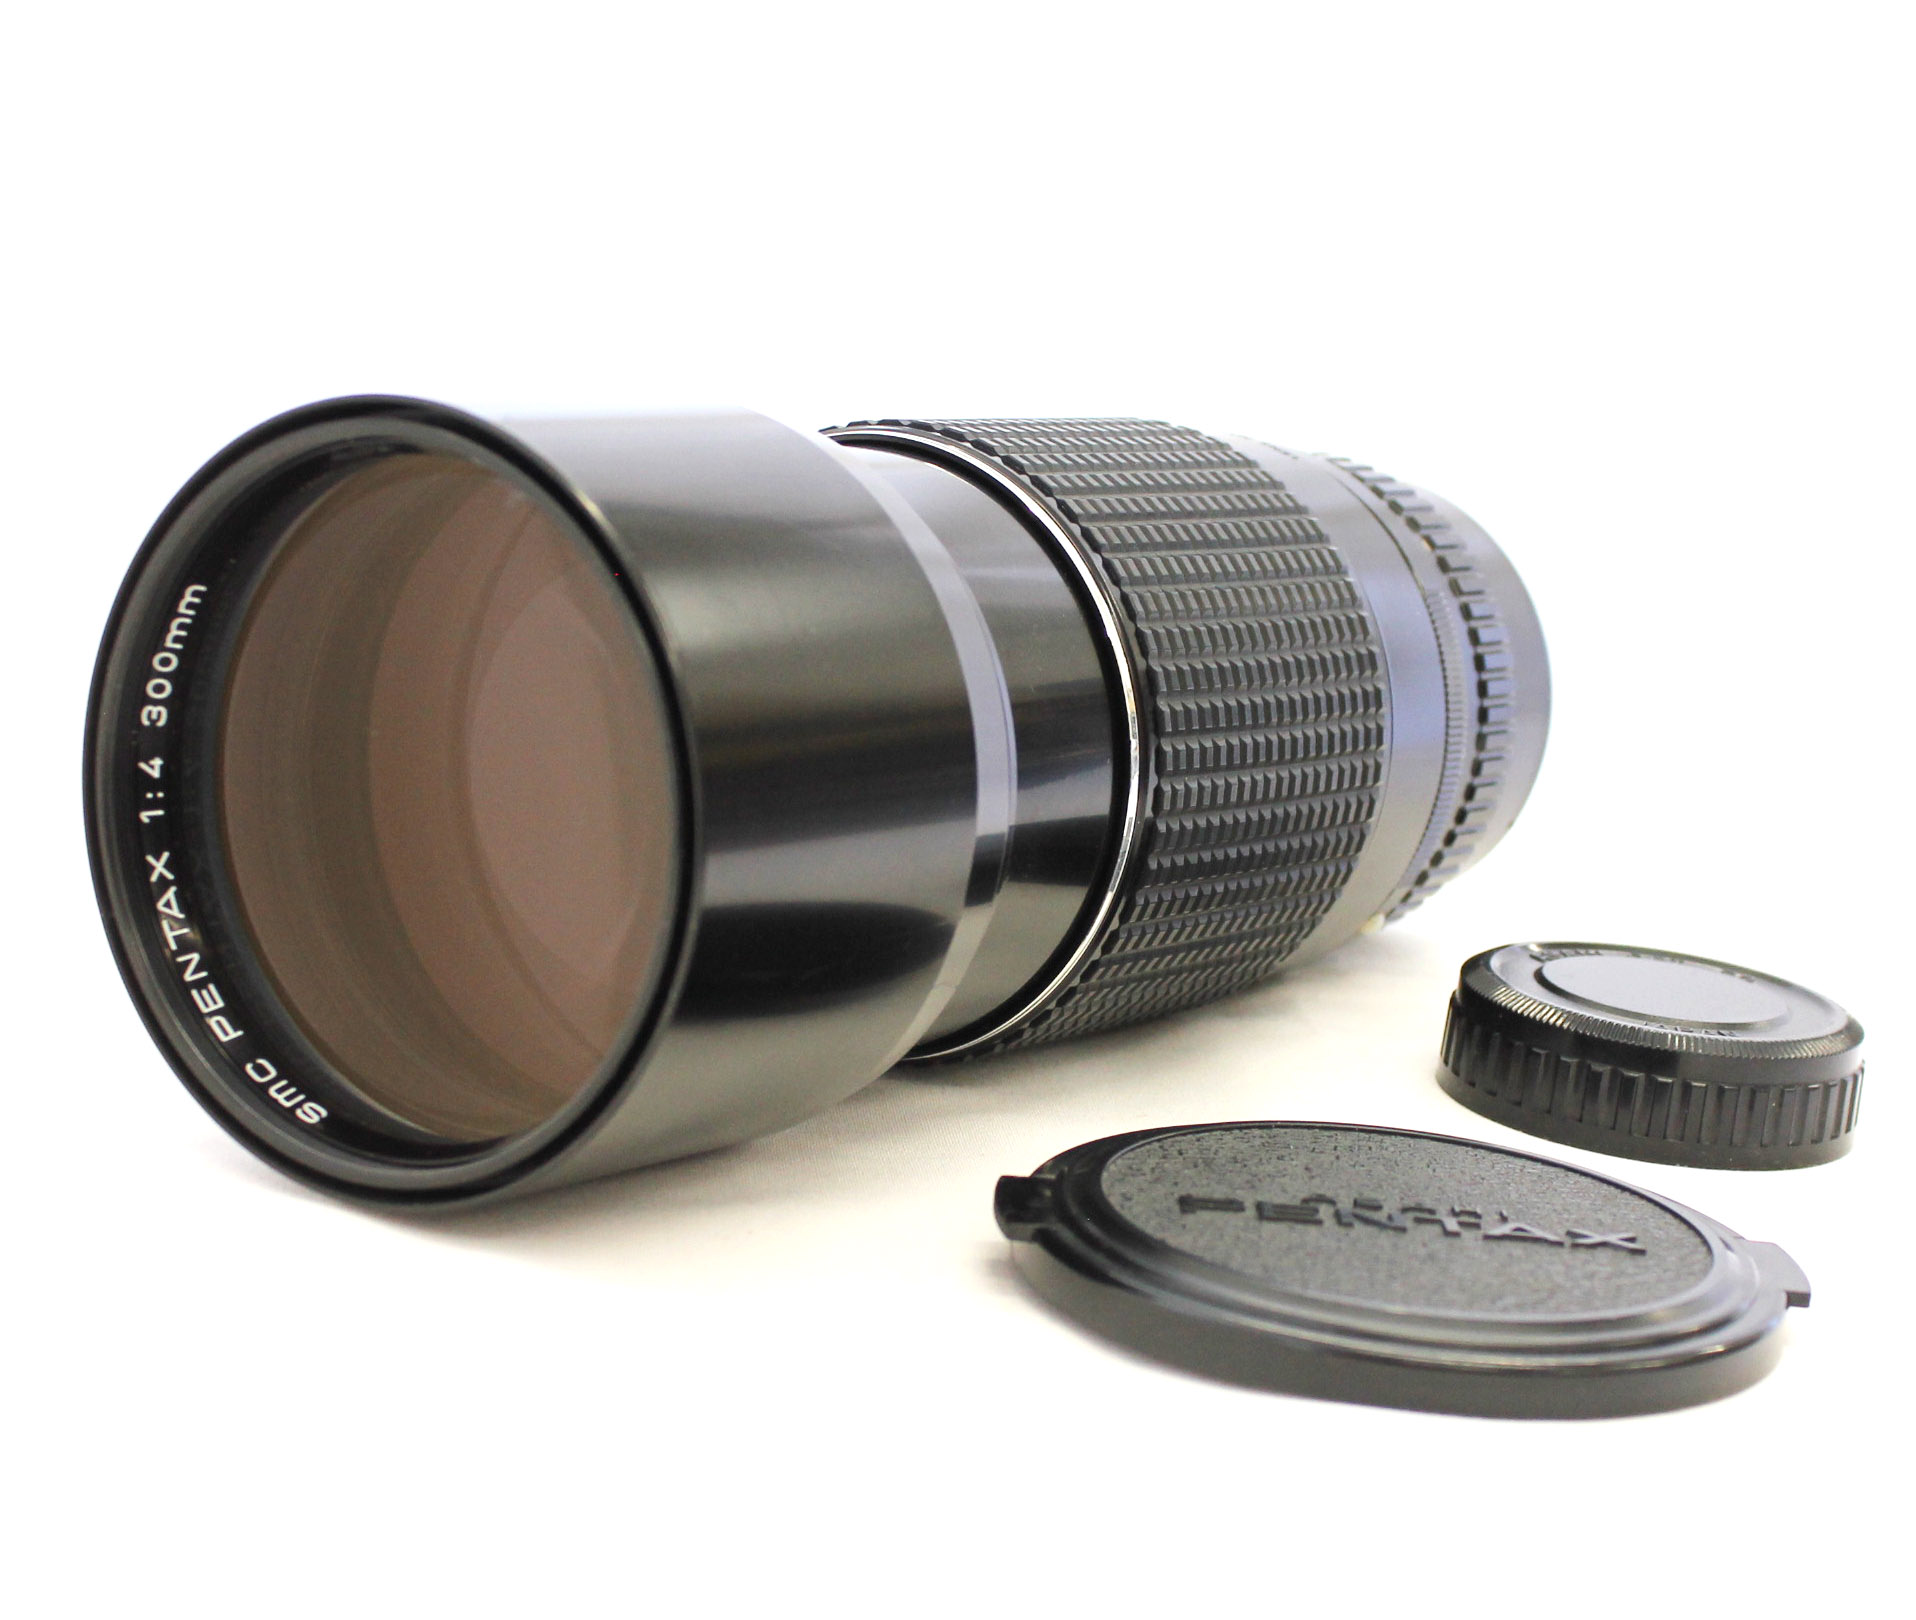 Japan Used Camera Shop | Pentax SMC Pentax 300mm F/4 PK K Mount MF Telephoto Lens from Japan